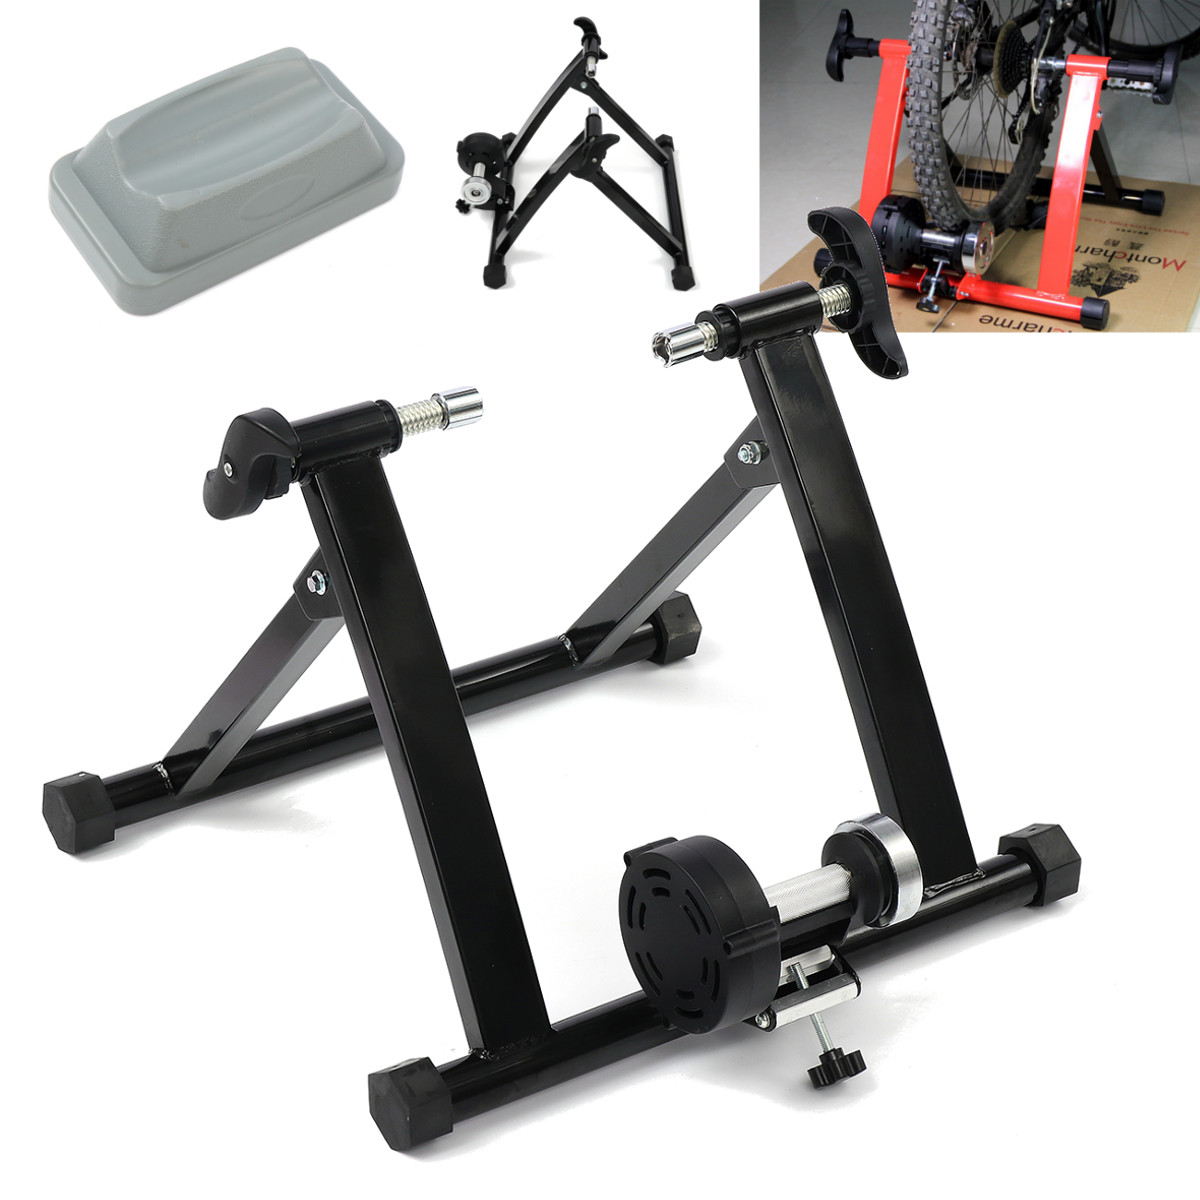 24-29 Inch Wireless Home Exercise Fitness Stand Bicycle Parts Road MTB Training Accessories Kit Indoor Bicycle Bike Trainer